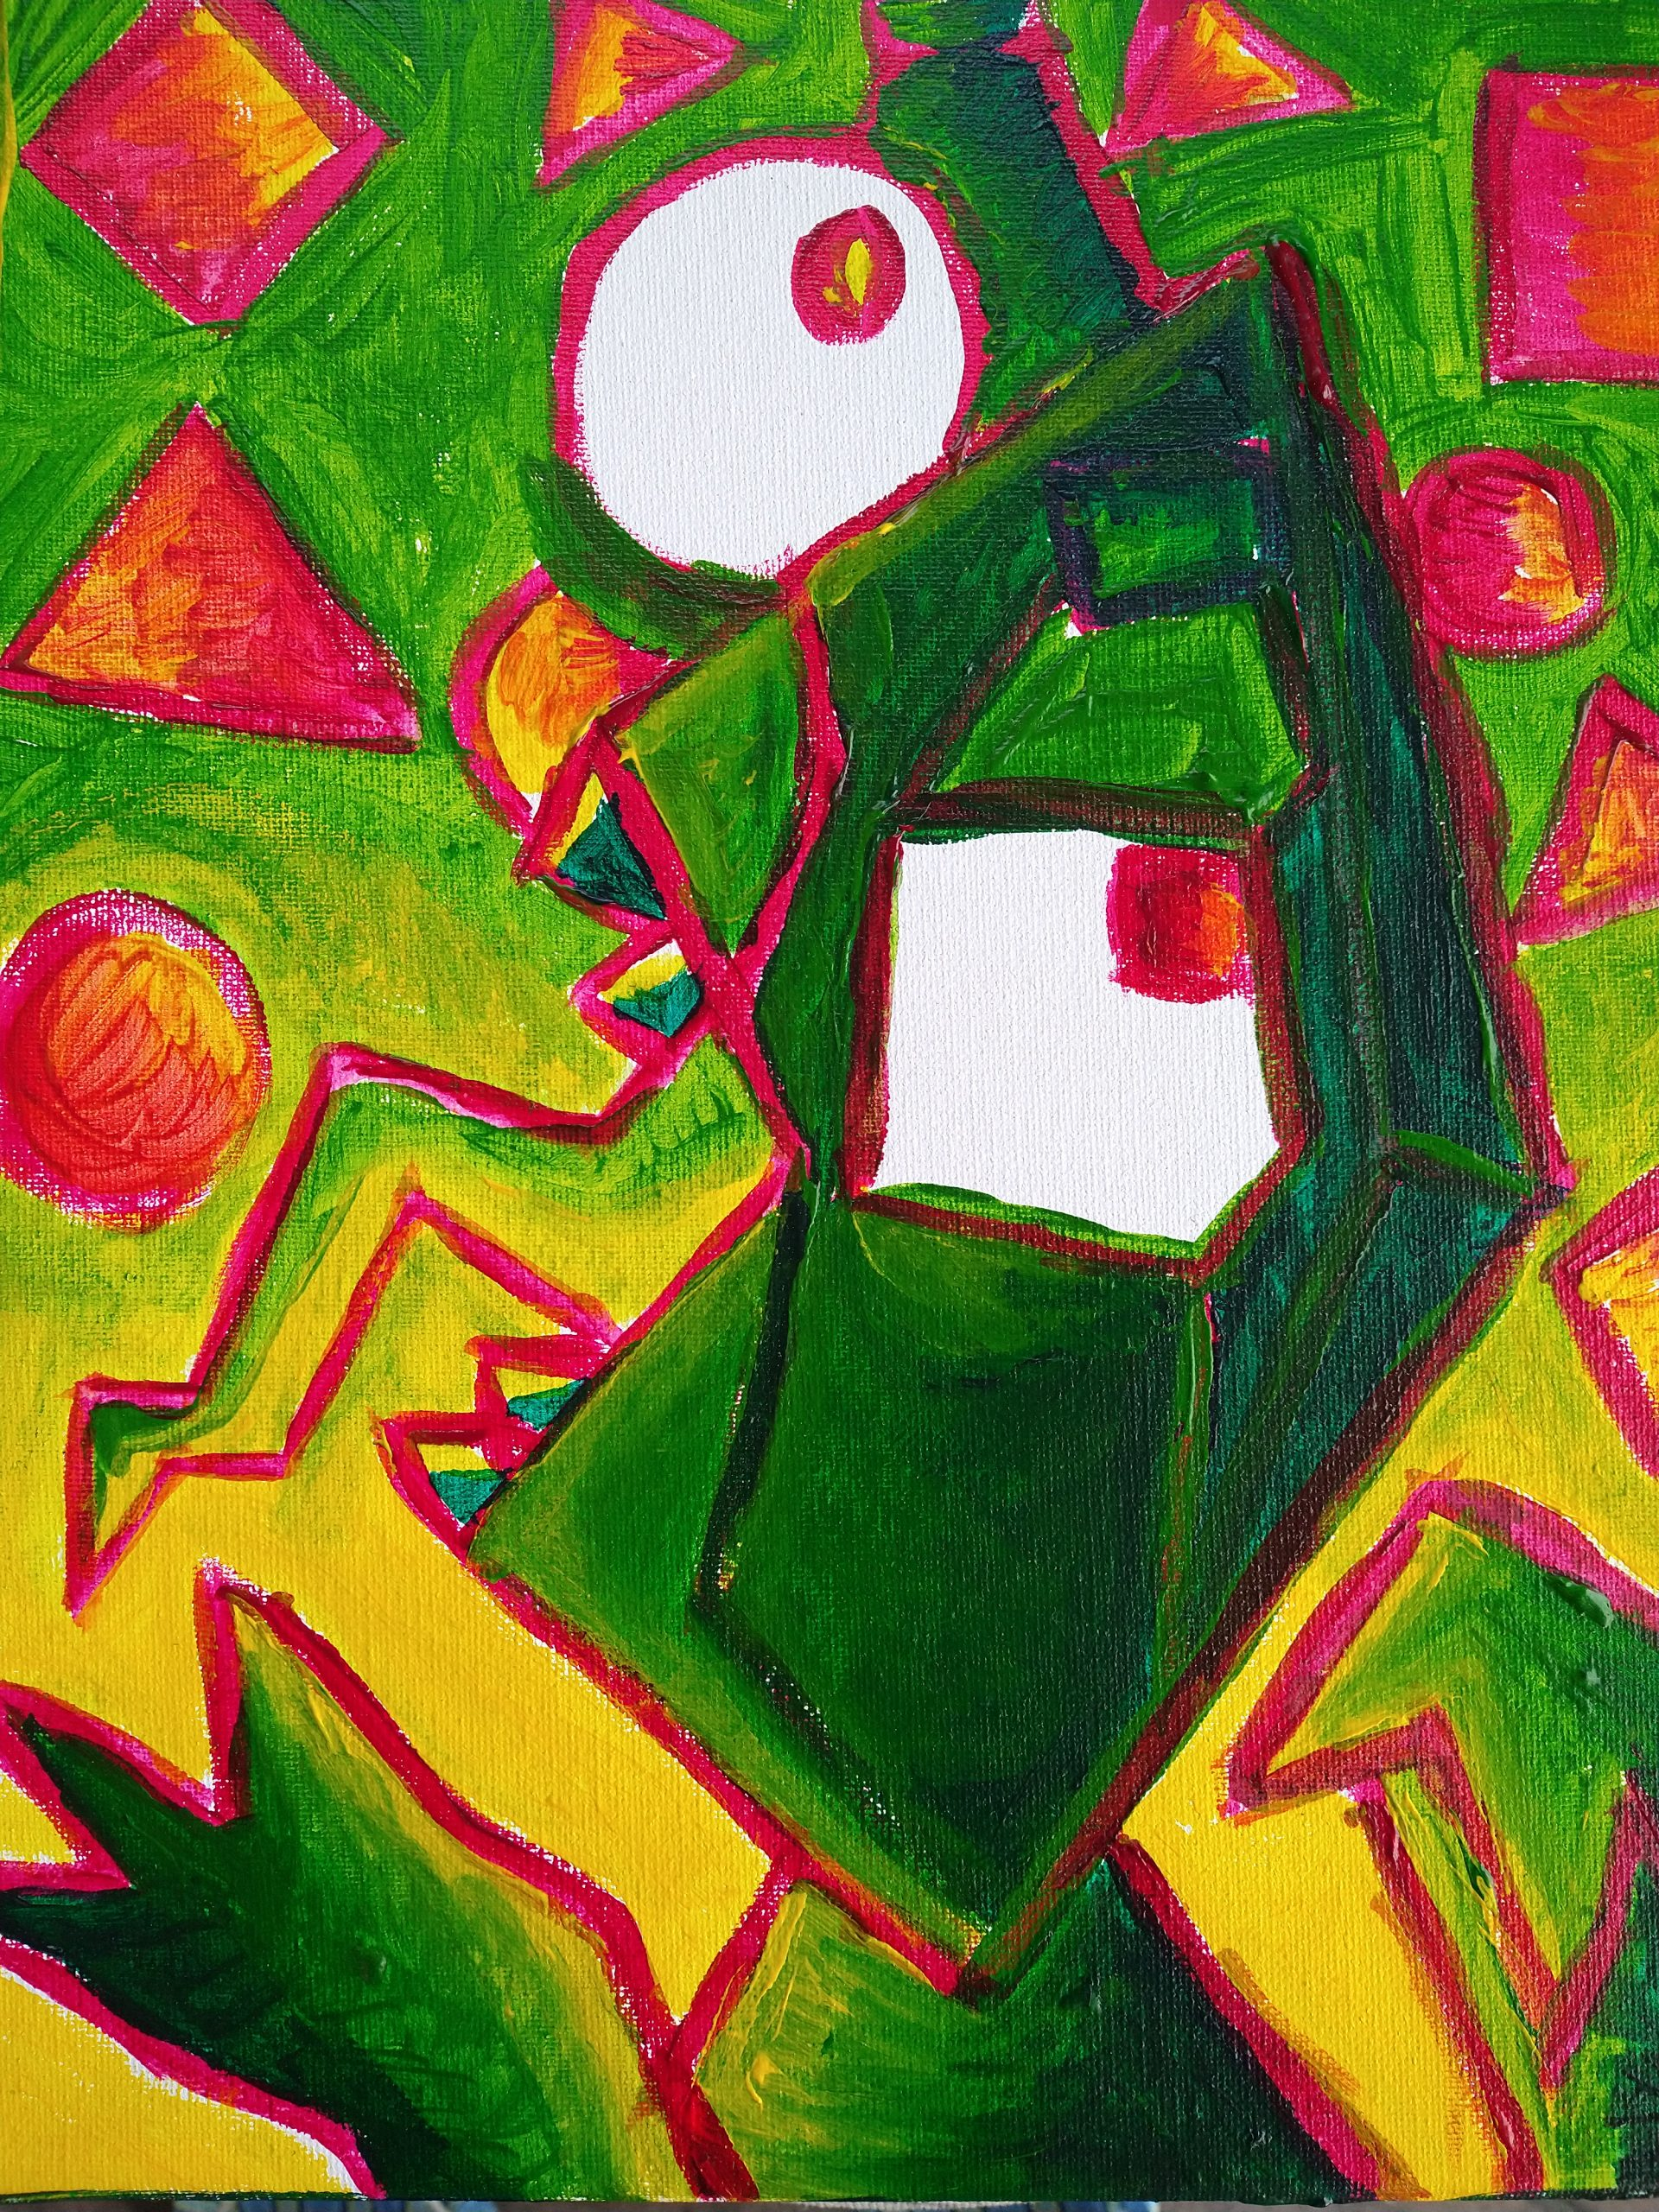 Abstract green, yellow red and white face.